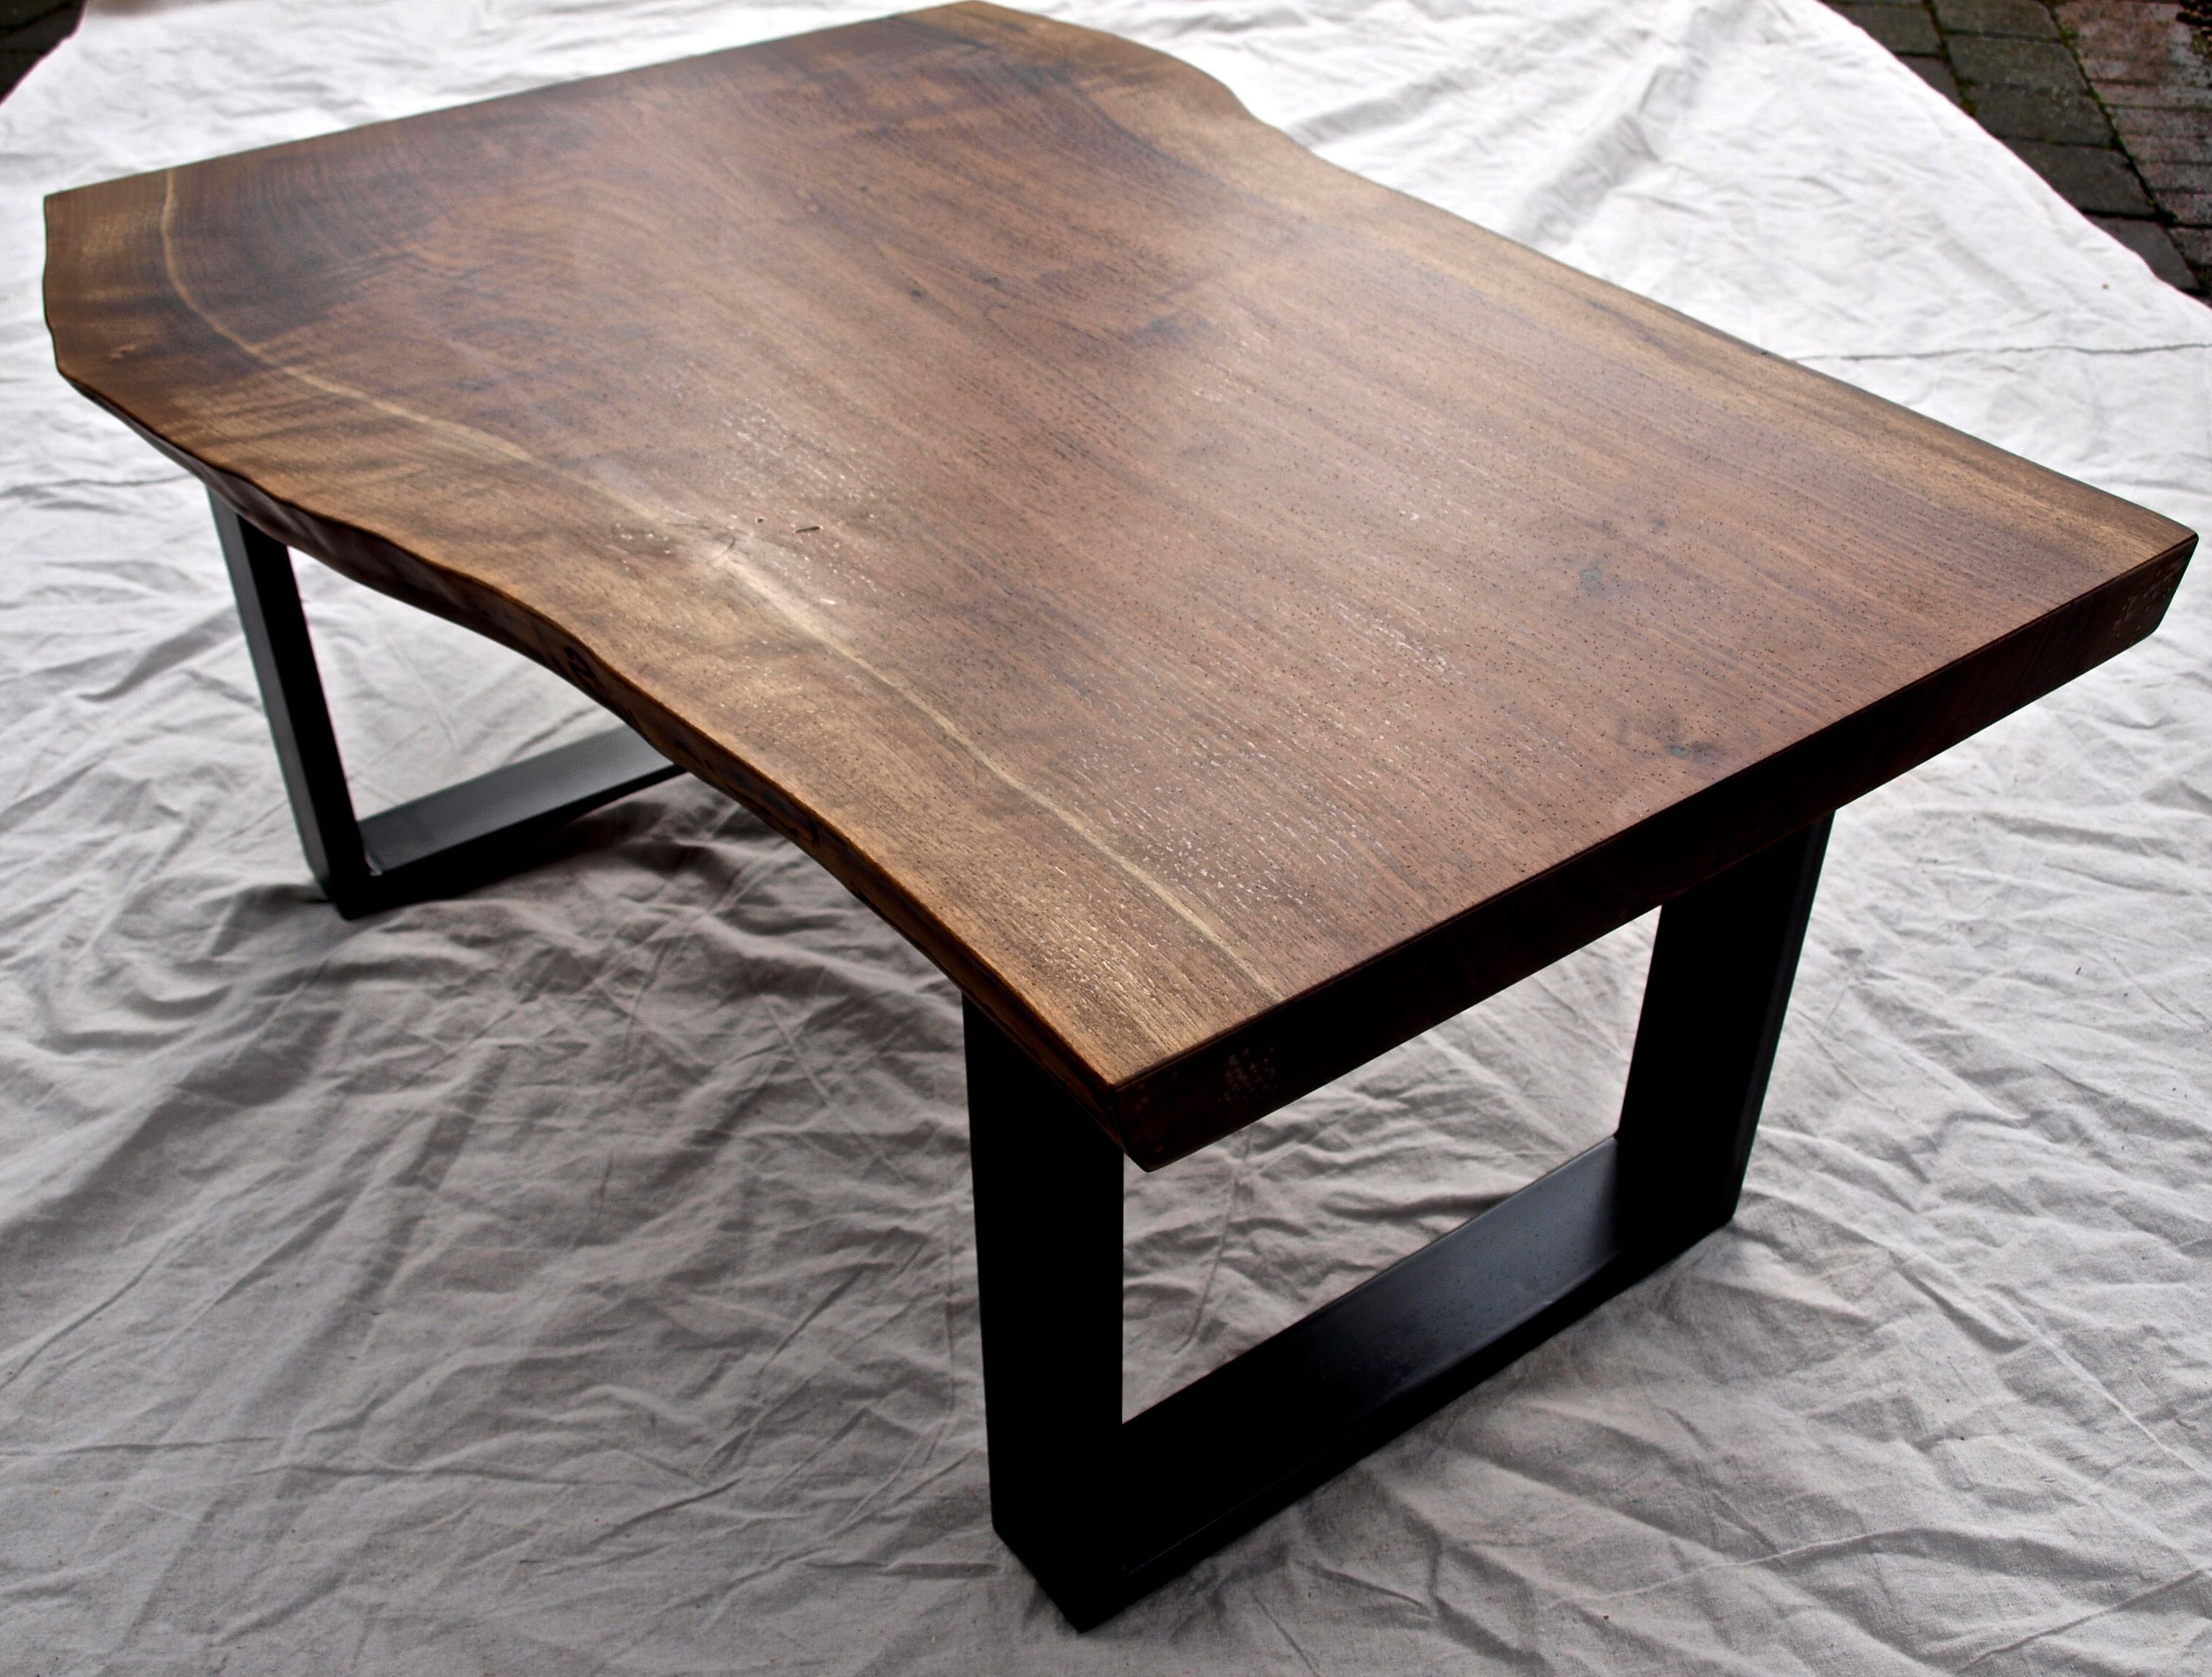 Buy A Hand Crafted Live Edge Walnut Coffee Table Made To